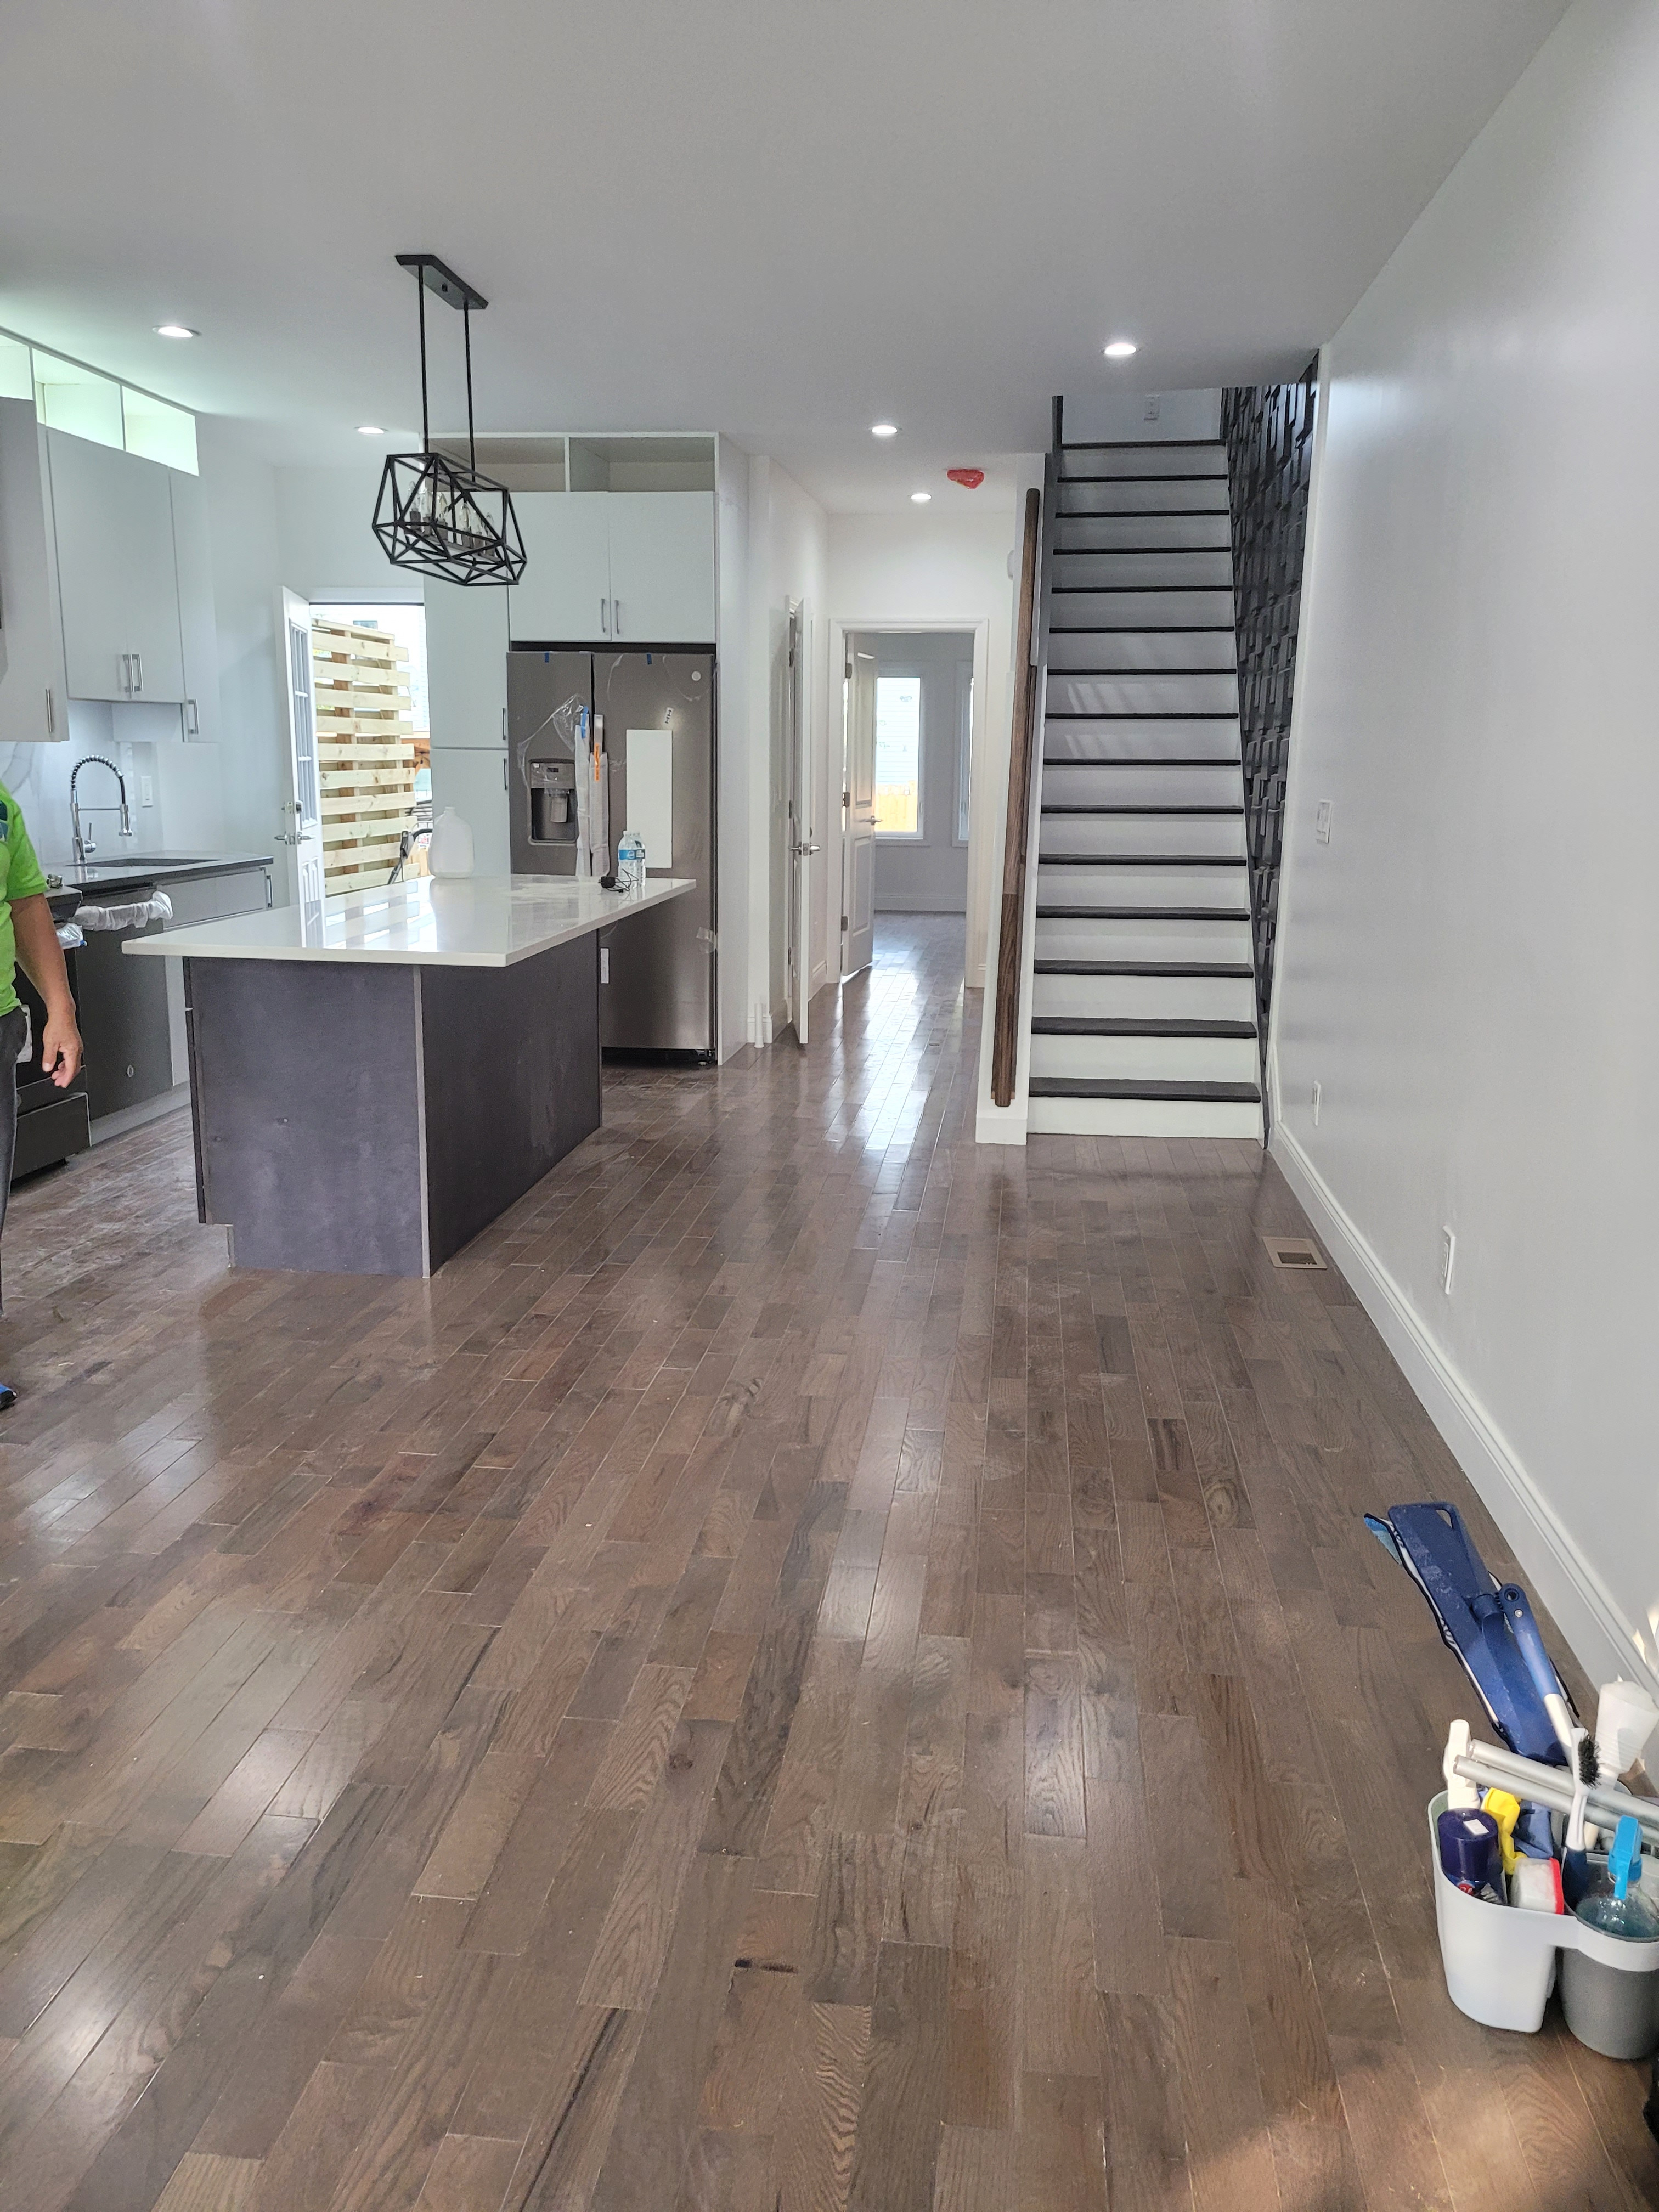 2 bed 1 bath (Move-in/out Cleaning)